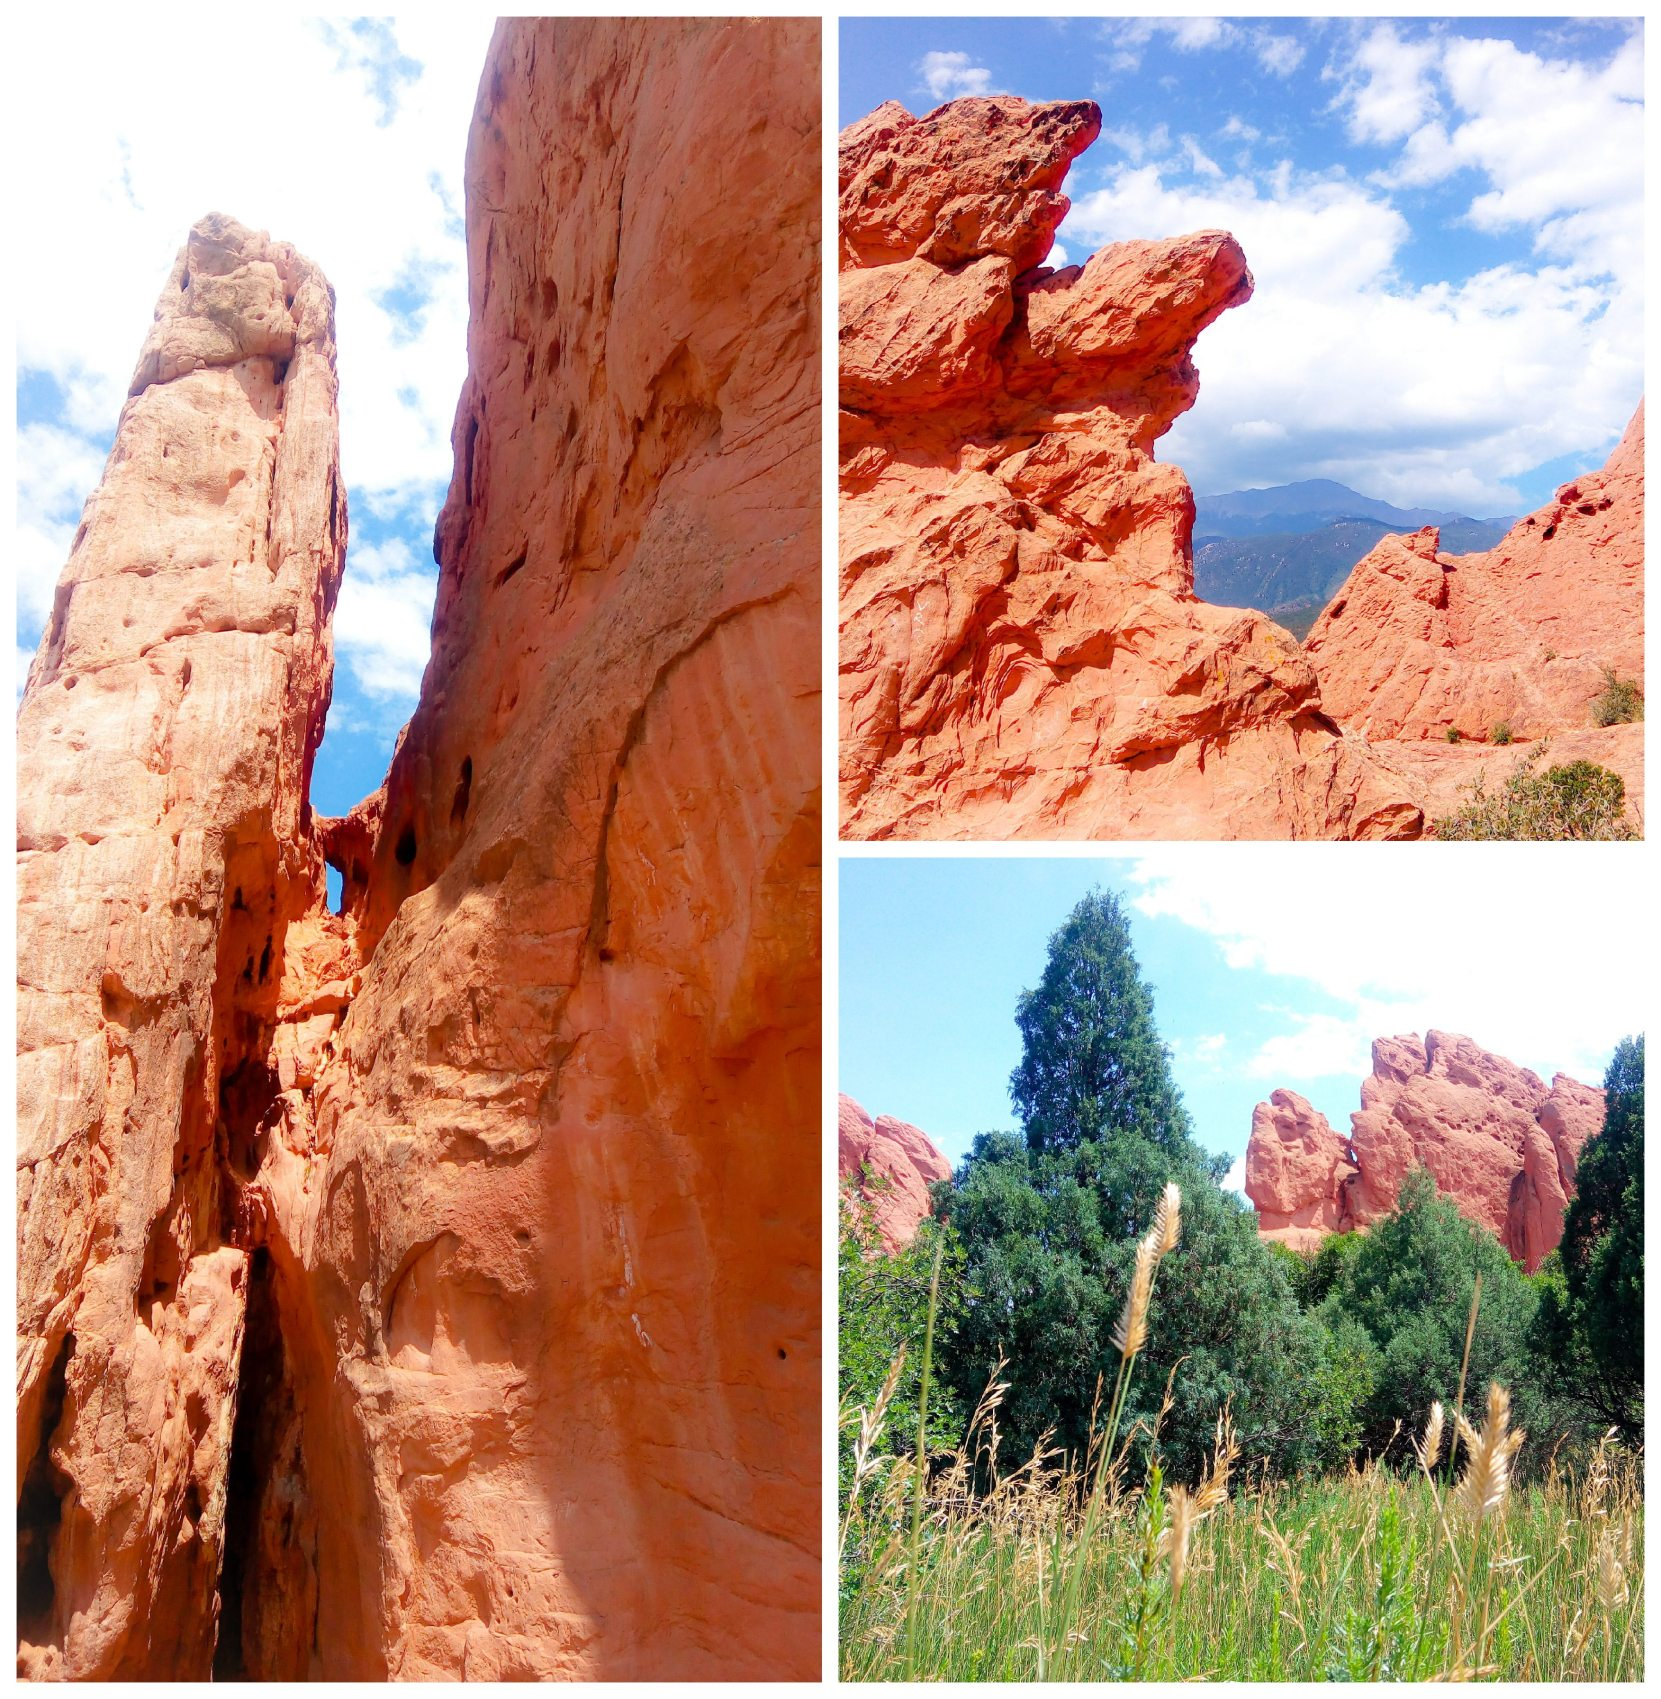 Nature Photos Colour - Colorado Springs, Colorado, US. 'Garden of the Gods.' Ute petroglyphs have been found in the area, and it is said the place had a spiritual significance for the Ute tribe. sketchbookexplorer.com @davidasutton @sketchbookexplorer Facebook.com/davidanthonysutton #gardenofthegods #colorado #coloradosprings #unitedstates #USA #travel #travelblog #photography #nature #wildwest